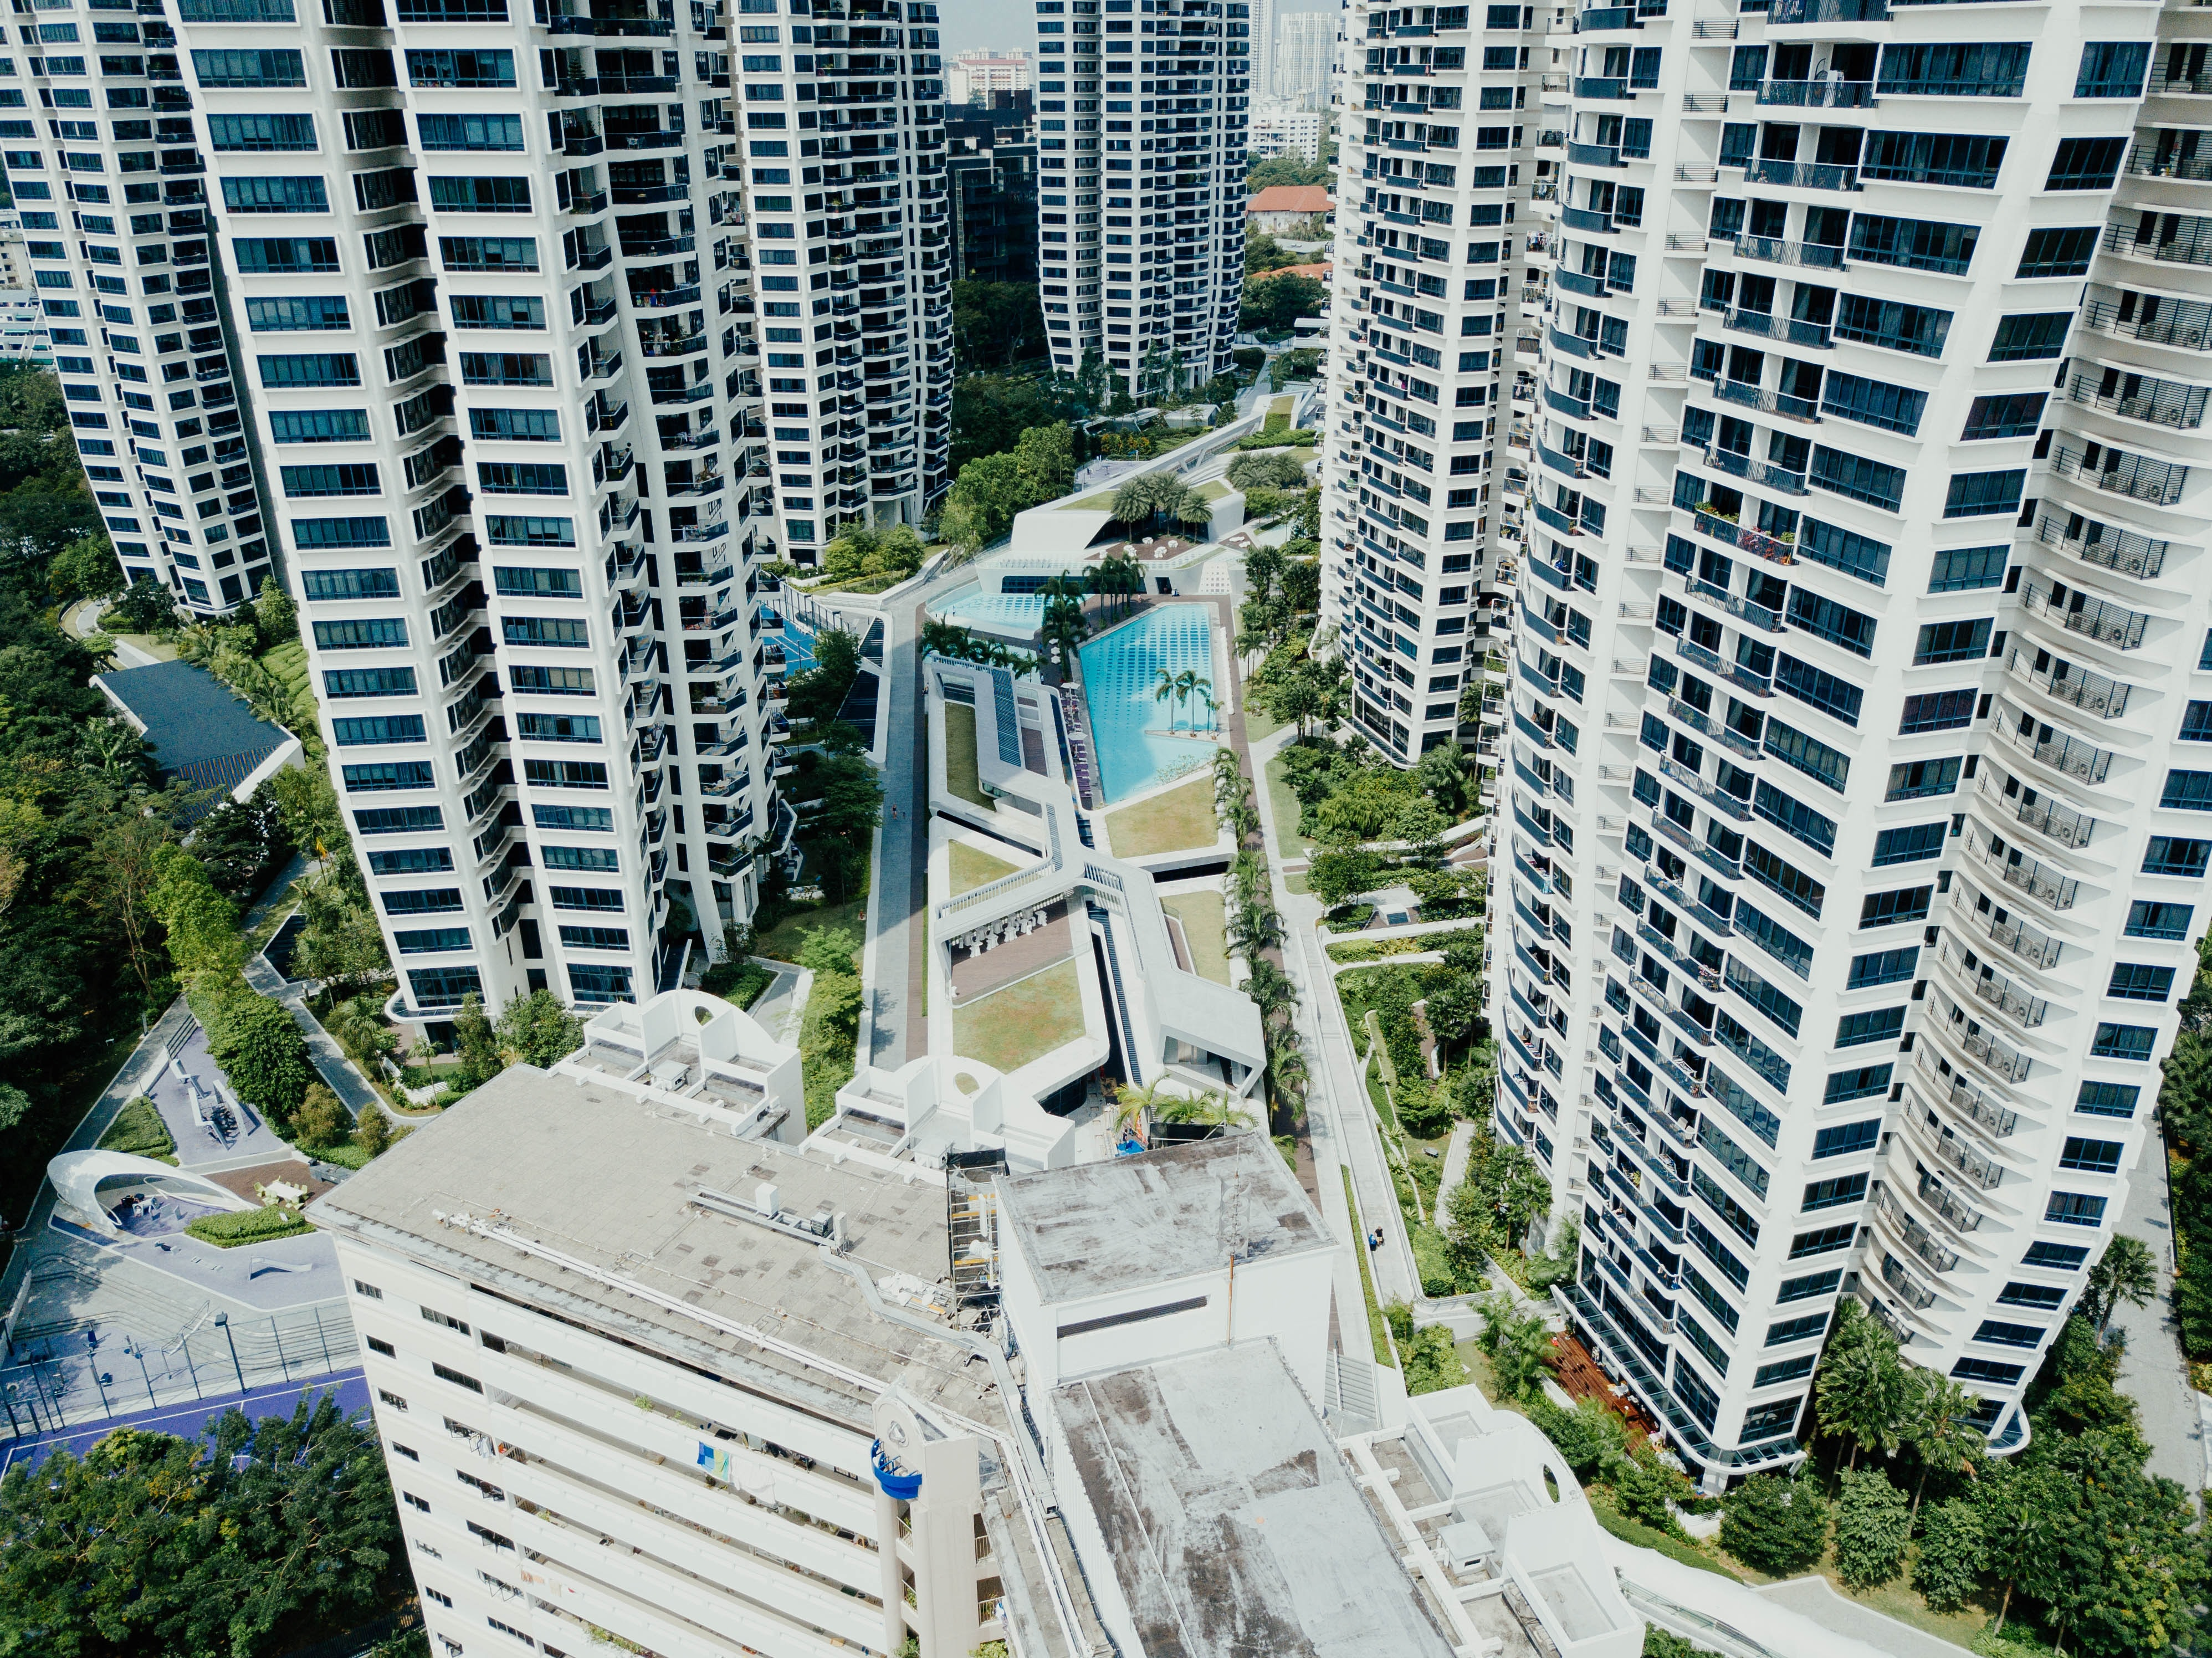 aerial photography of white concrete buildings